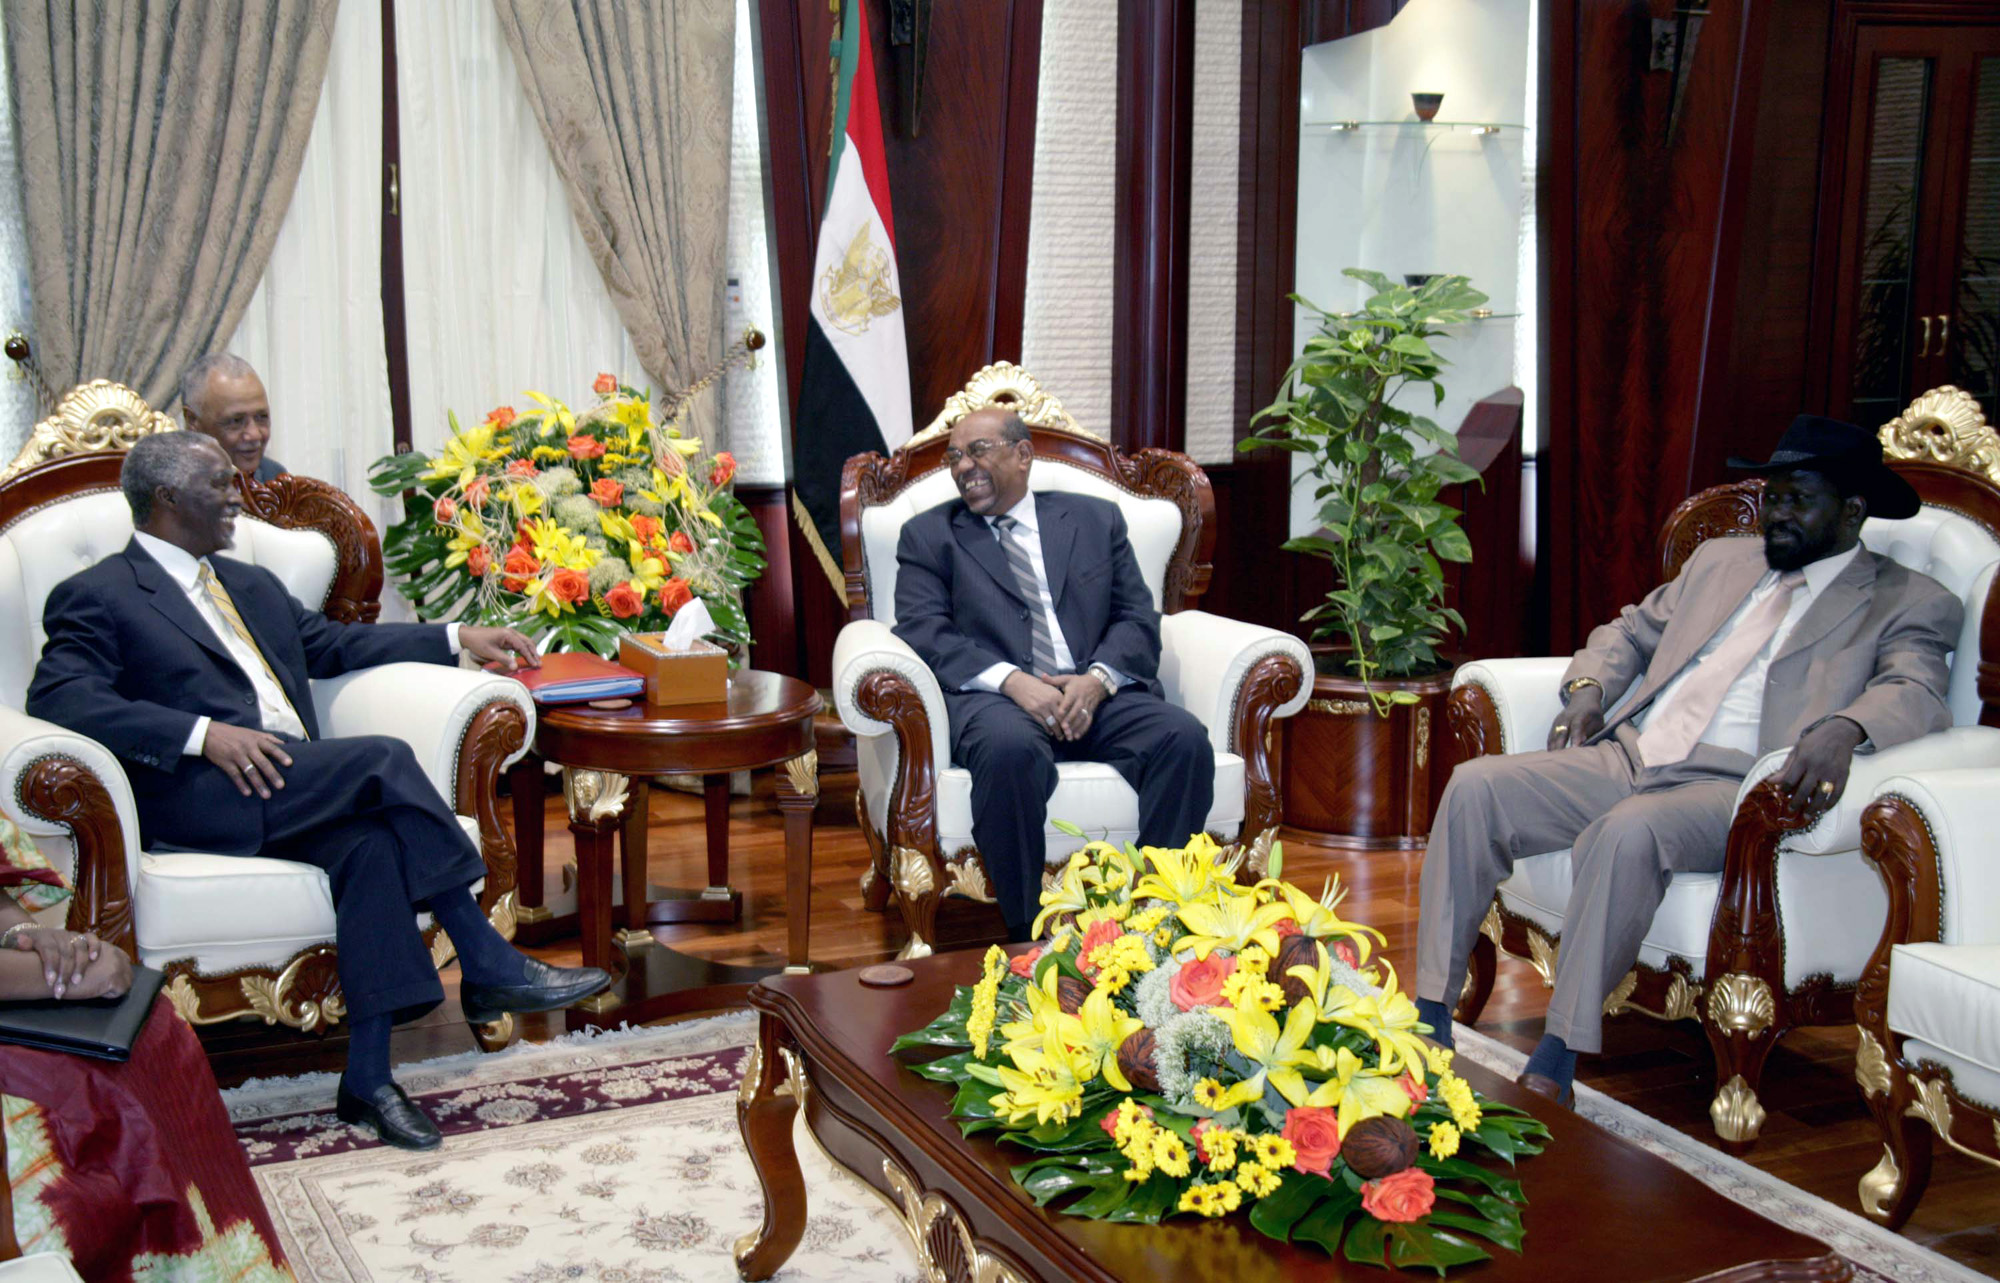 Sudan Report: Ongoing Negotiations between the Two Sudans